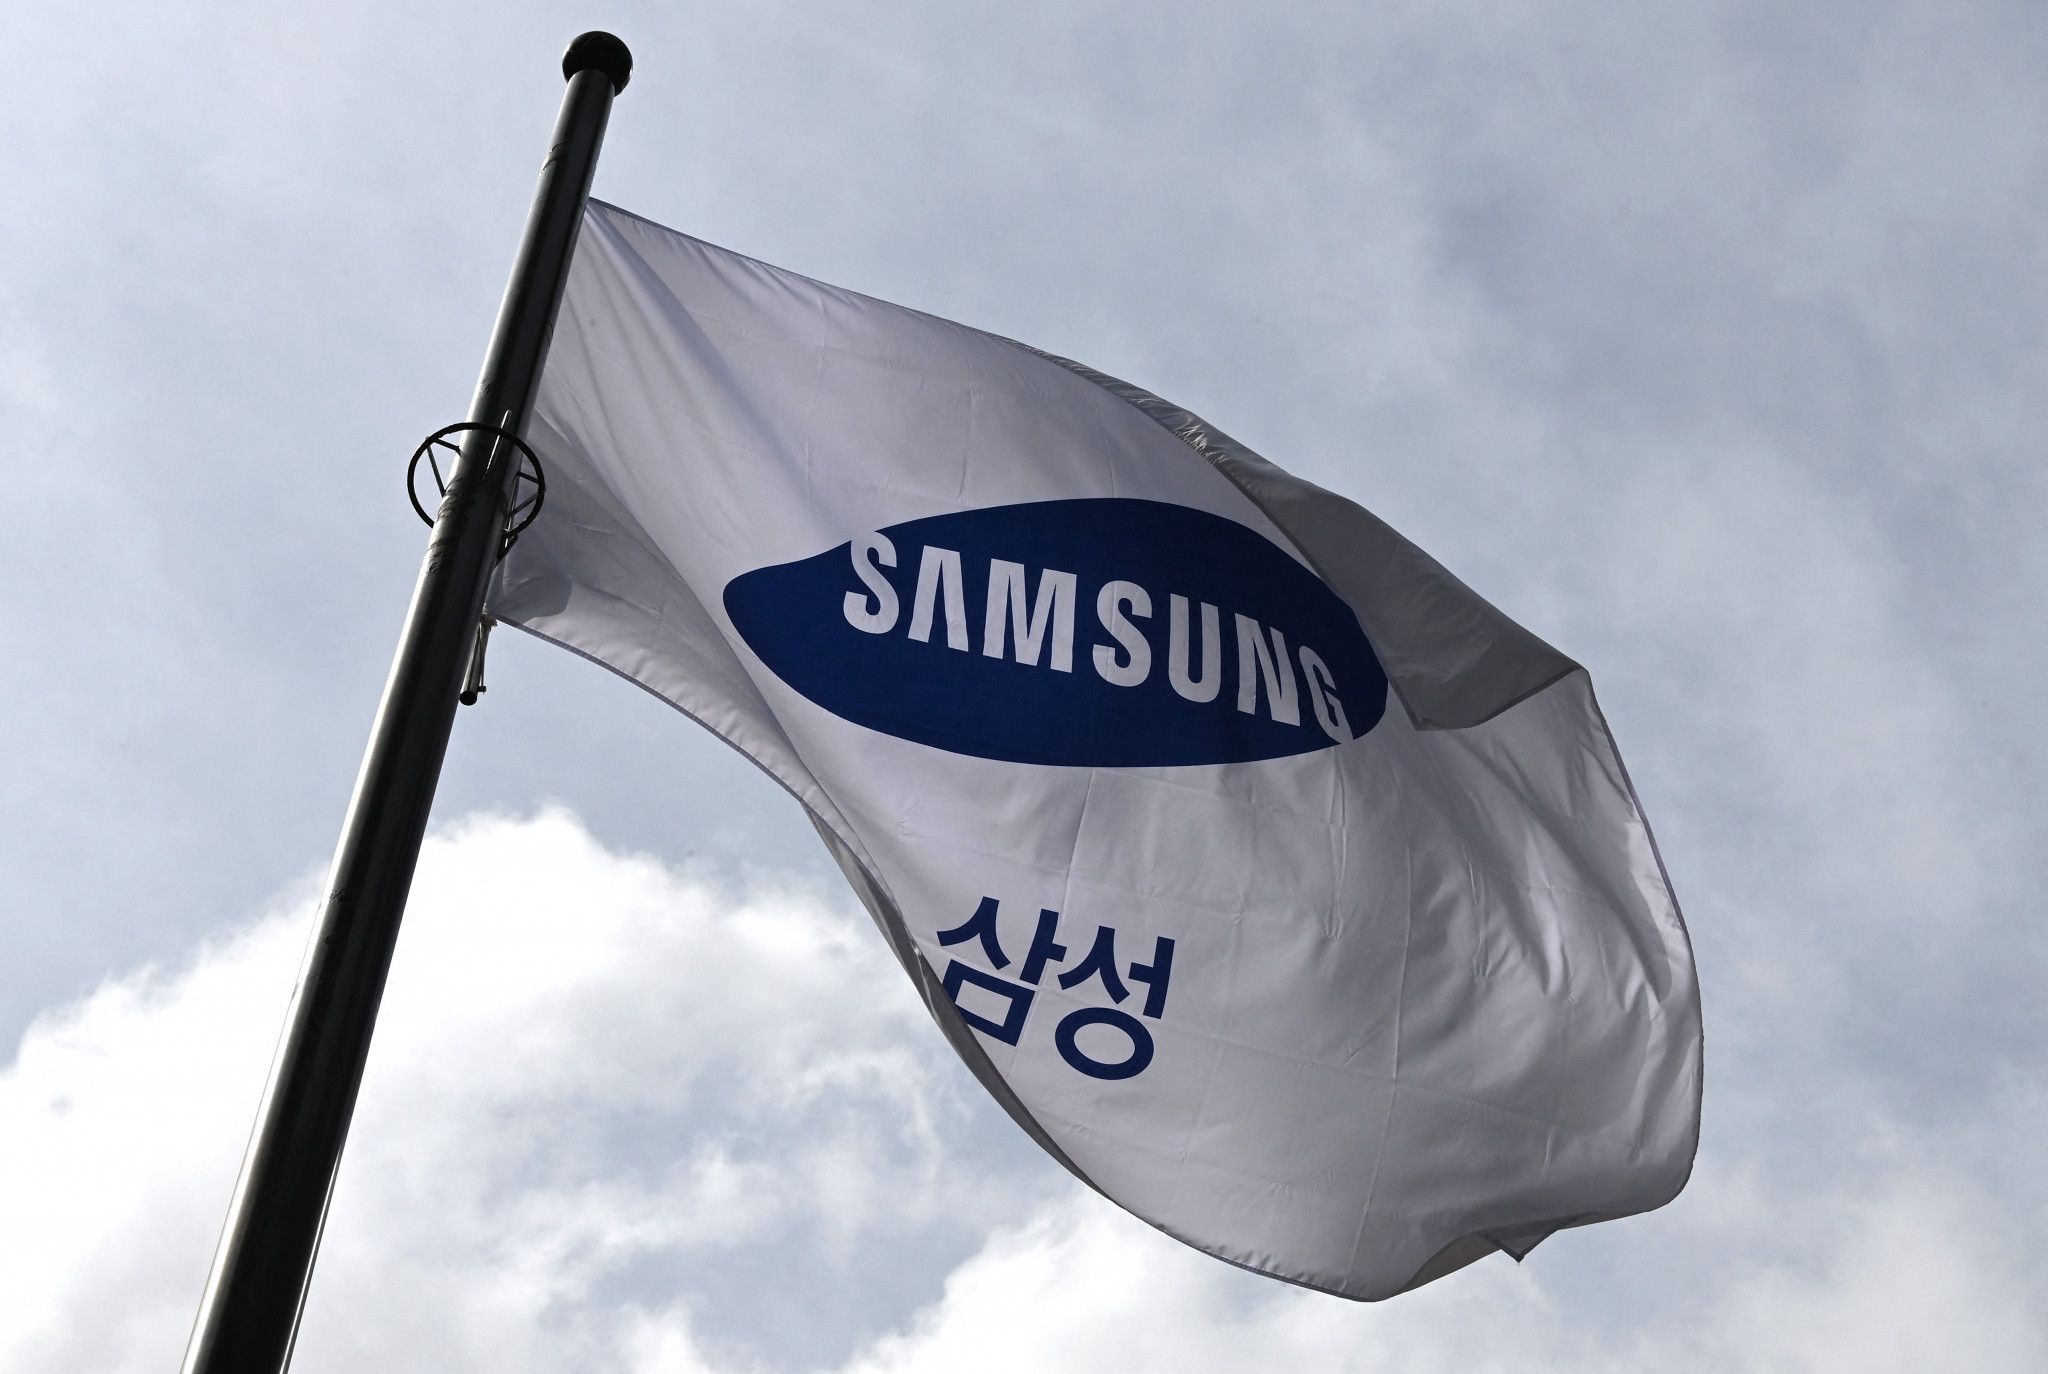 Samsung is to donate $1,000 to the Canadian Olympic Foundation for every medal Canada wins at Tokyo 2020 ©Getty Images